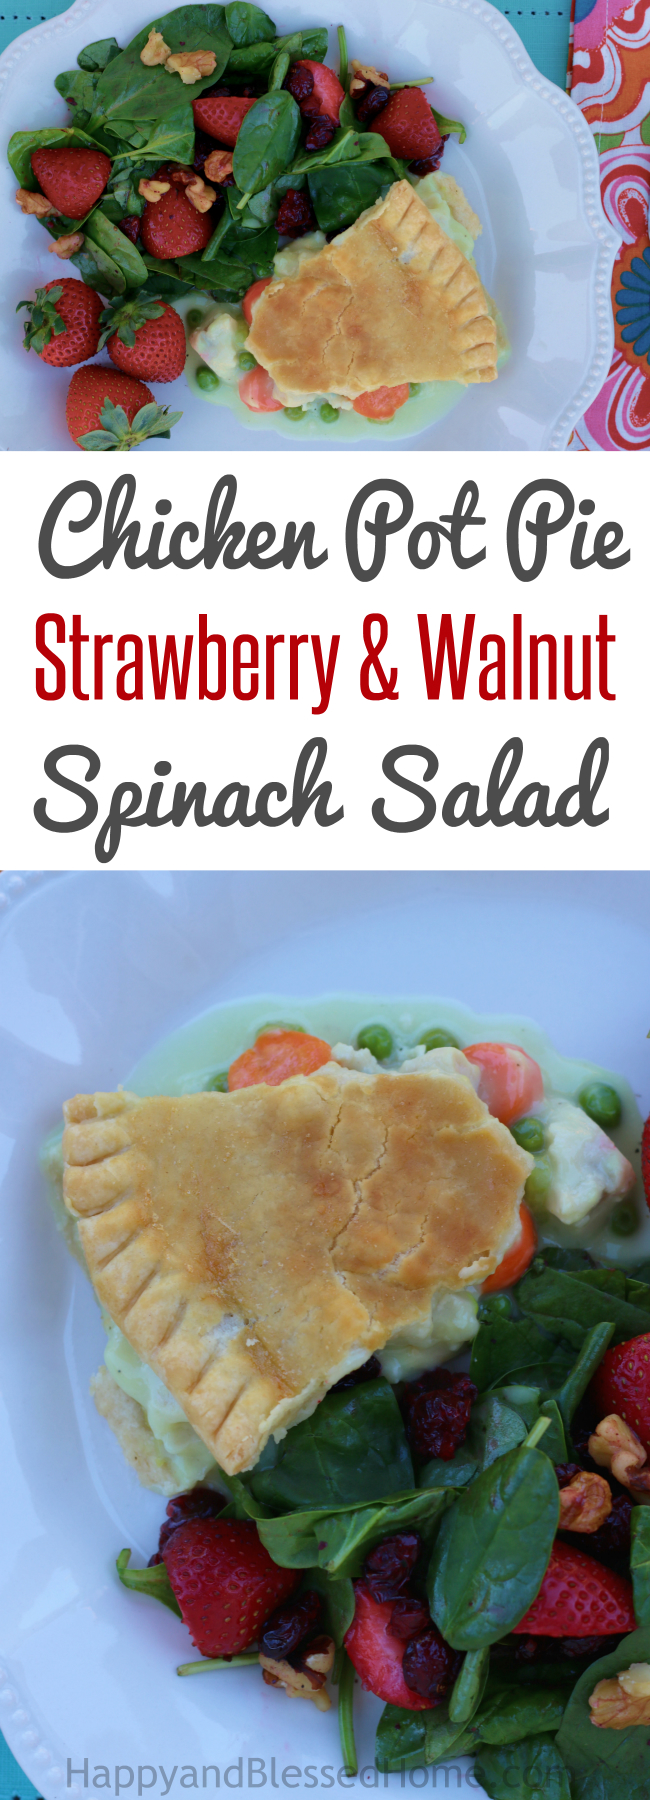 Warm hearty and perfect on a cool day -- Chicken Pot Pie and Strawberry and Walnut Spinach Salad